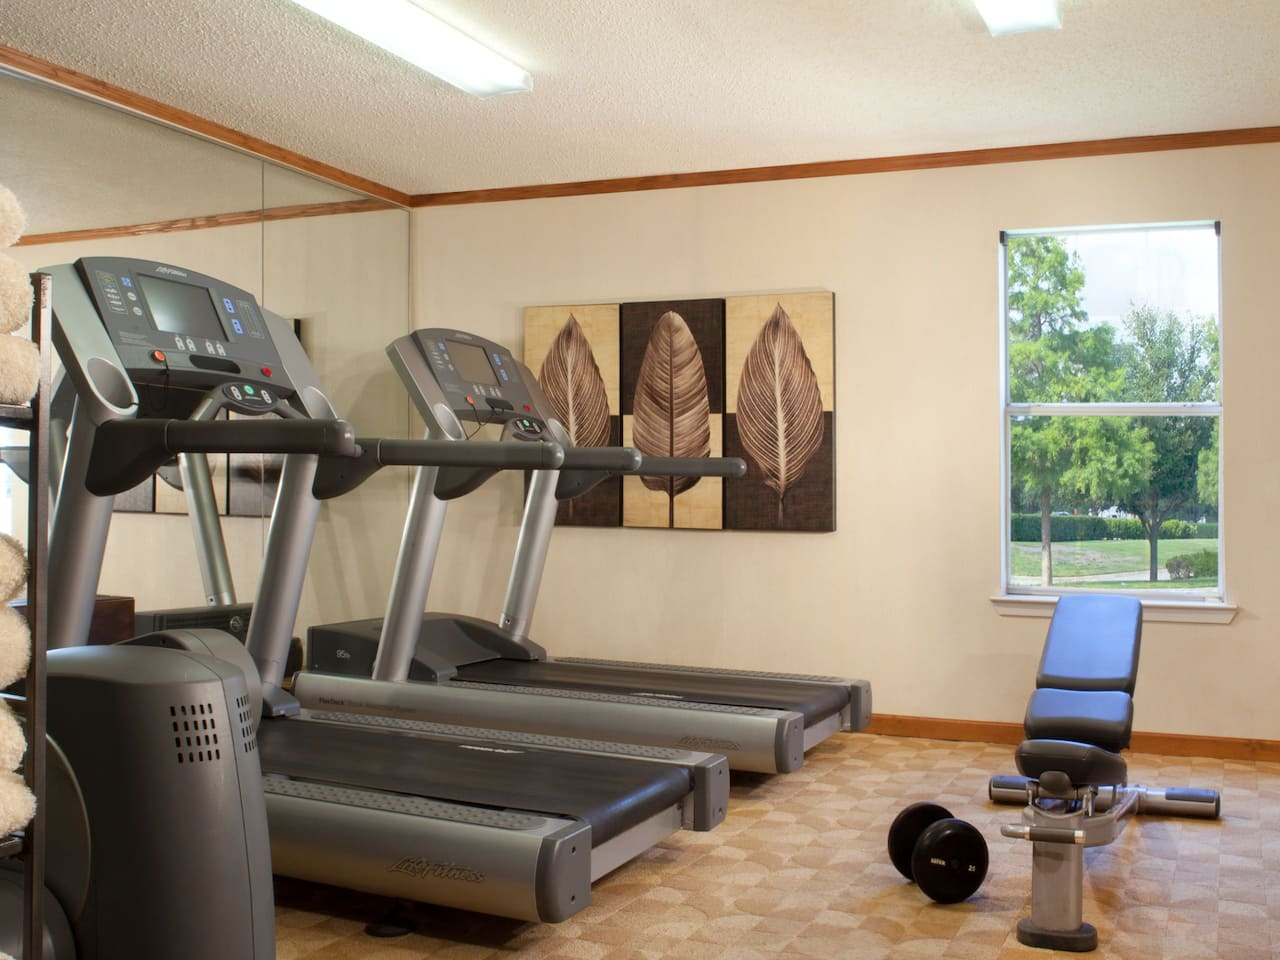 Hyatt House Dallas Richardson Gym